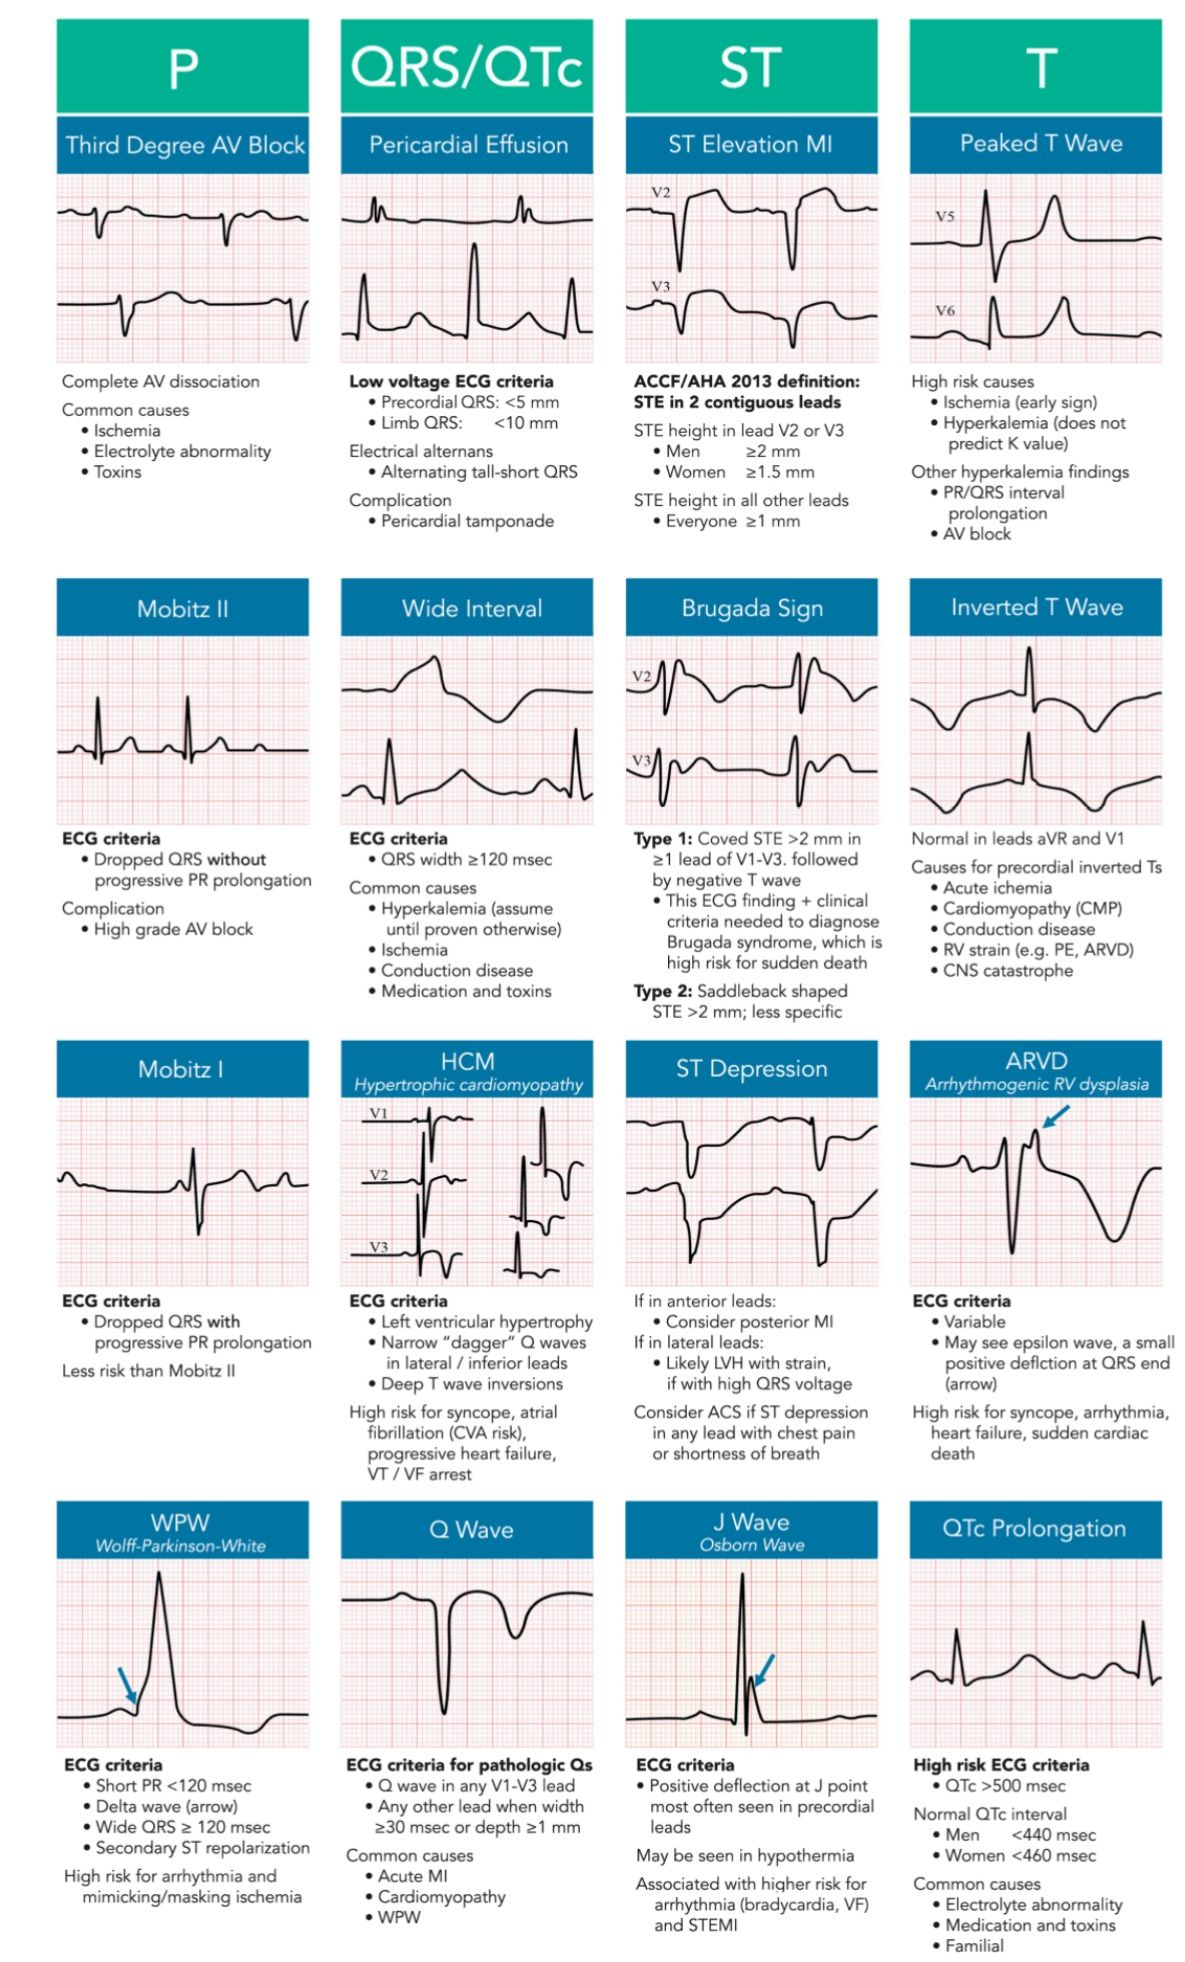 Pin By Carol Sise On Fnp Cardiovascular Pinterest Cardiology Invention Story Of Electrocardiography Ecg Willem Einthoven Medical And Emergency Medicine